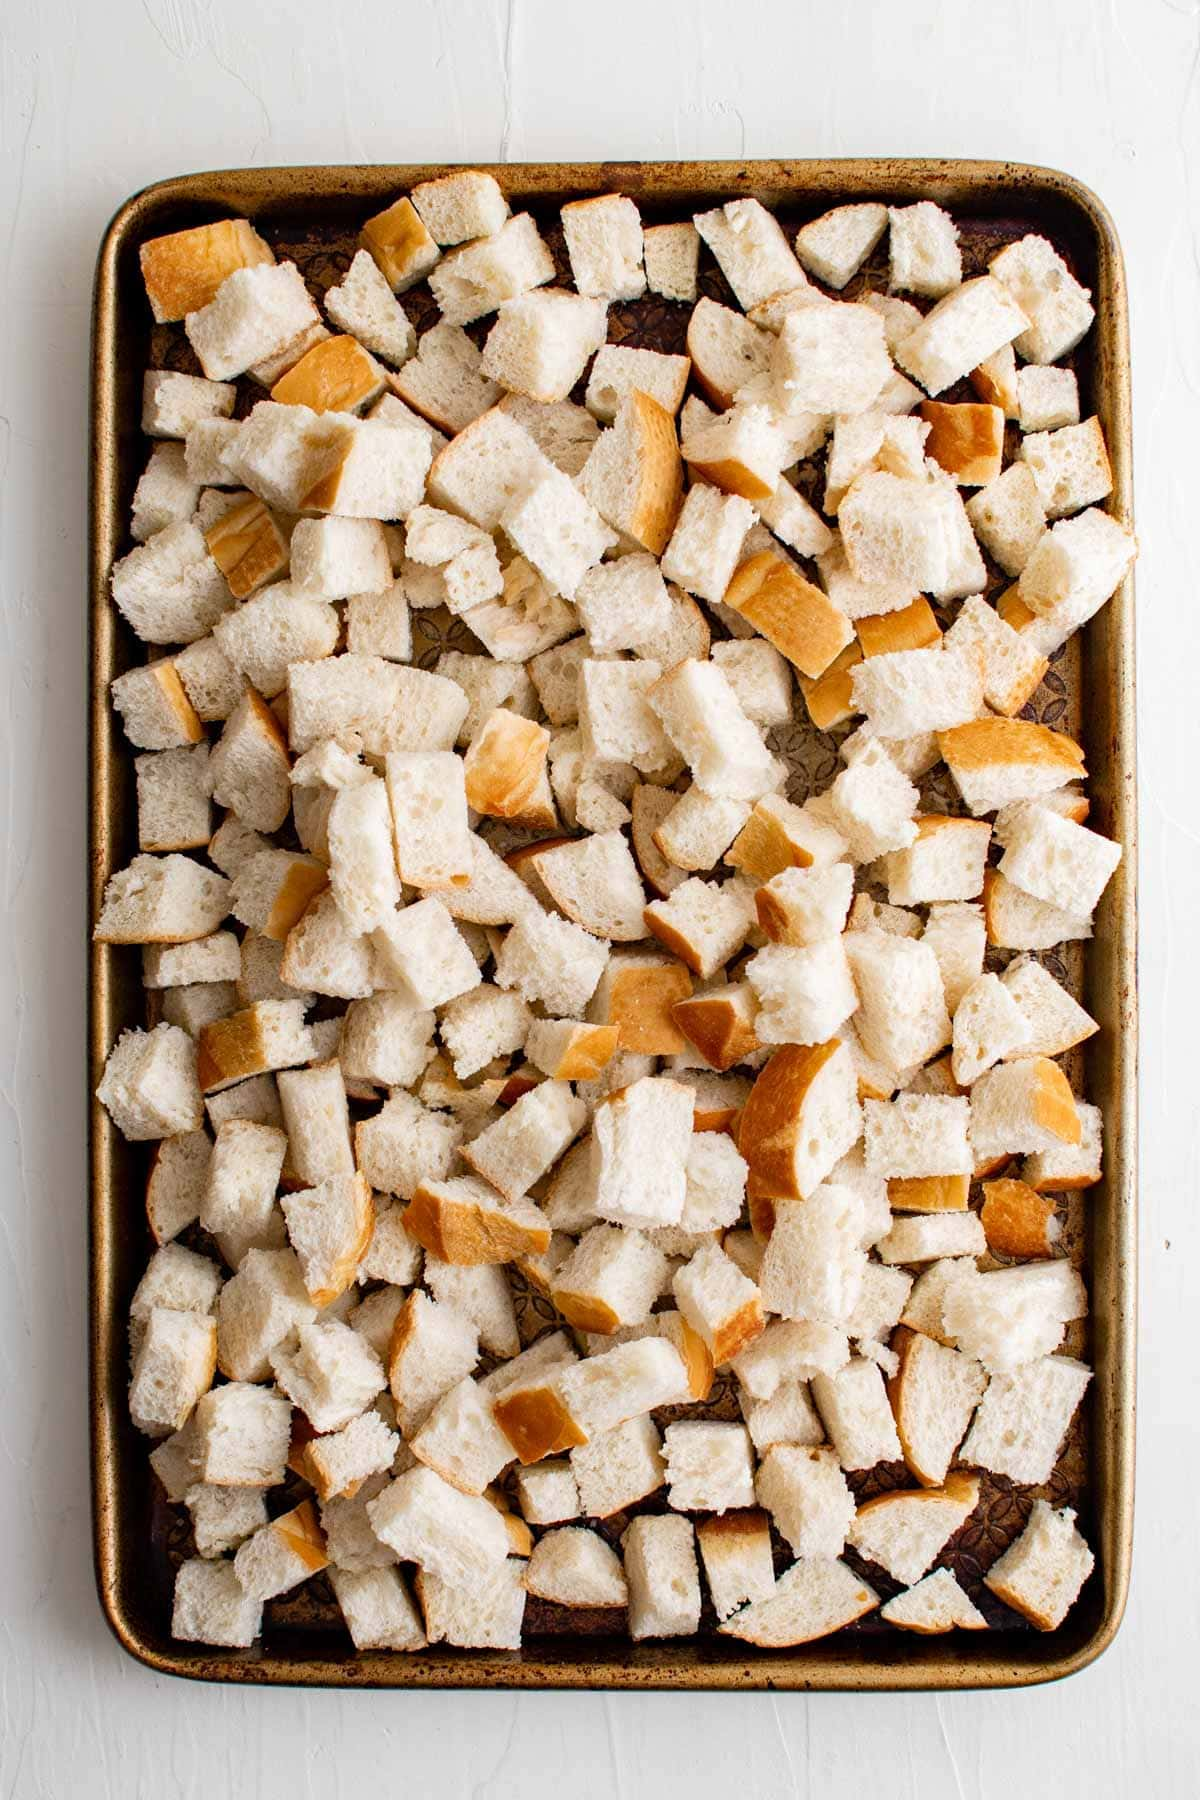 cubes of french bread on a baking sheet.